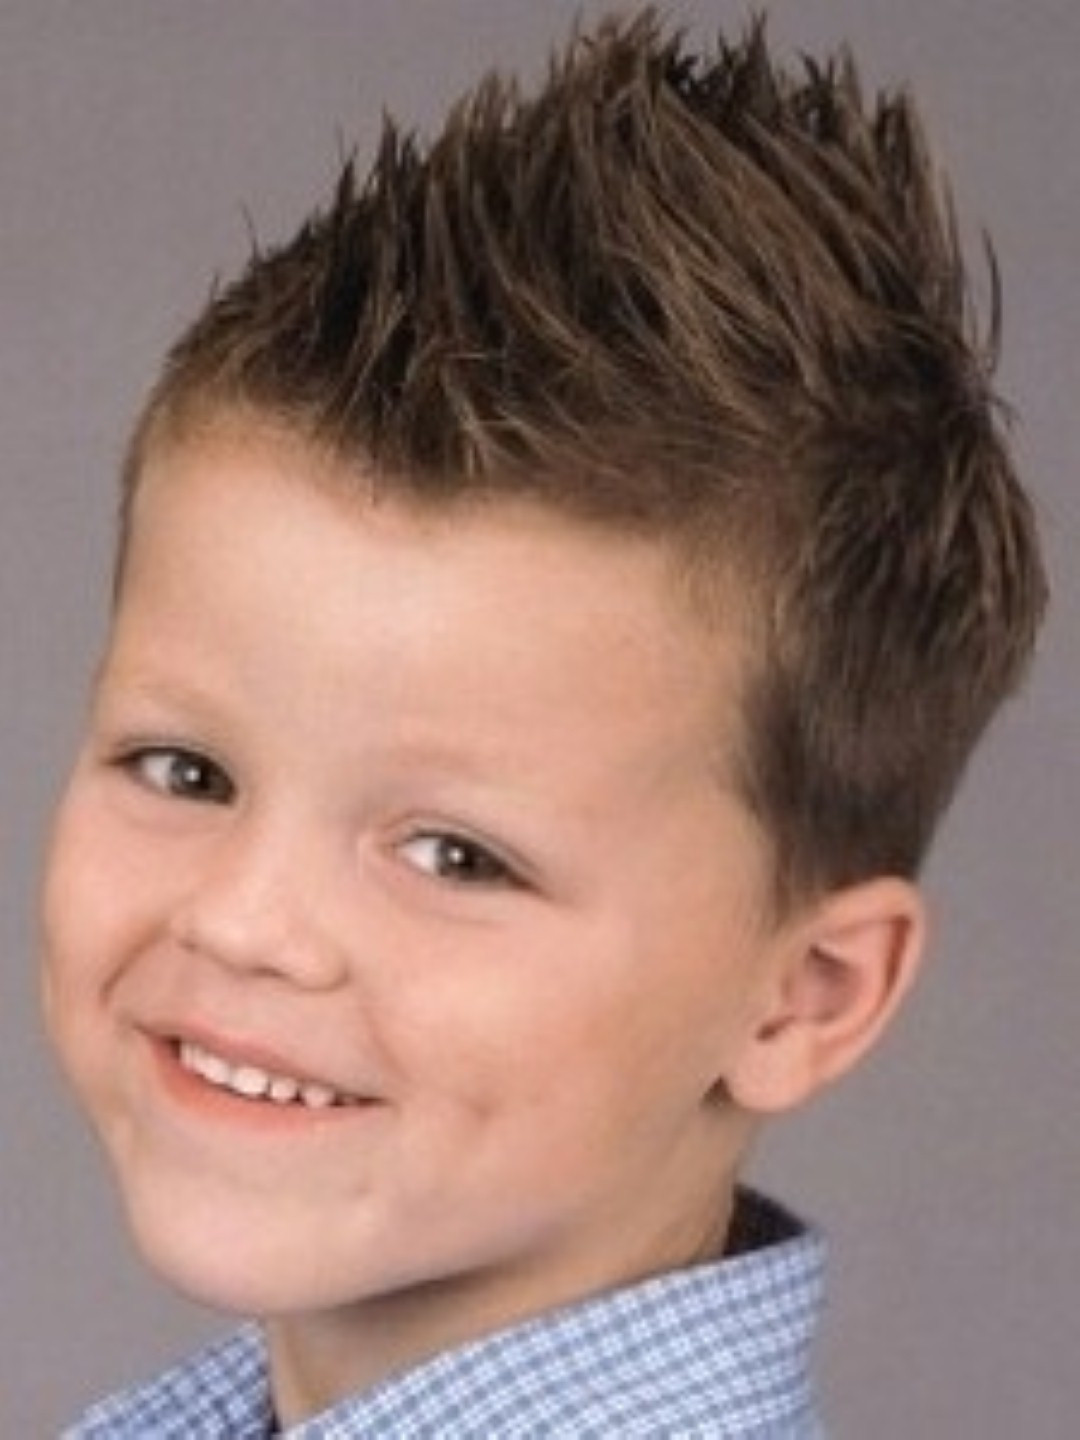 Kids Haircuts  30 Cool Hairstyles Ideas for Kids MagMent